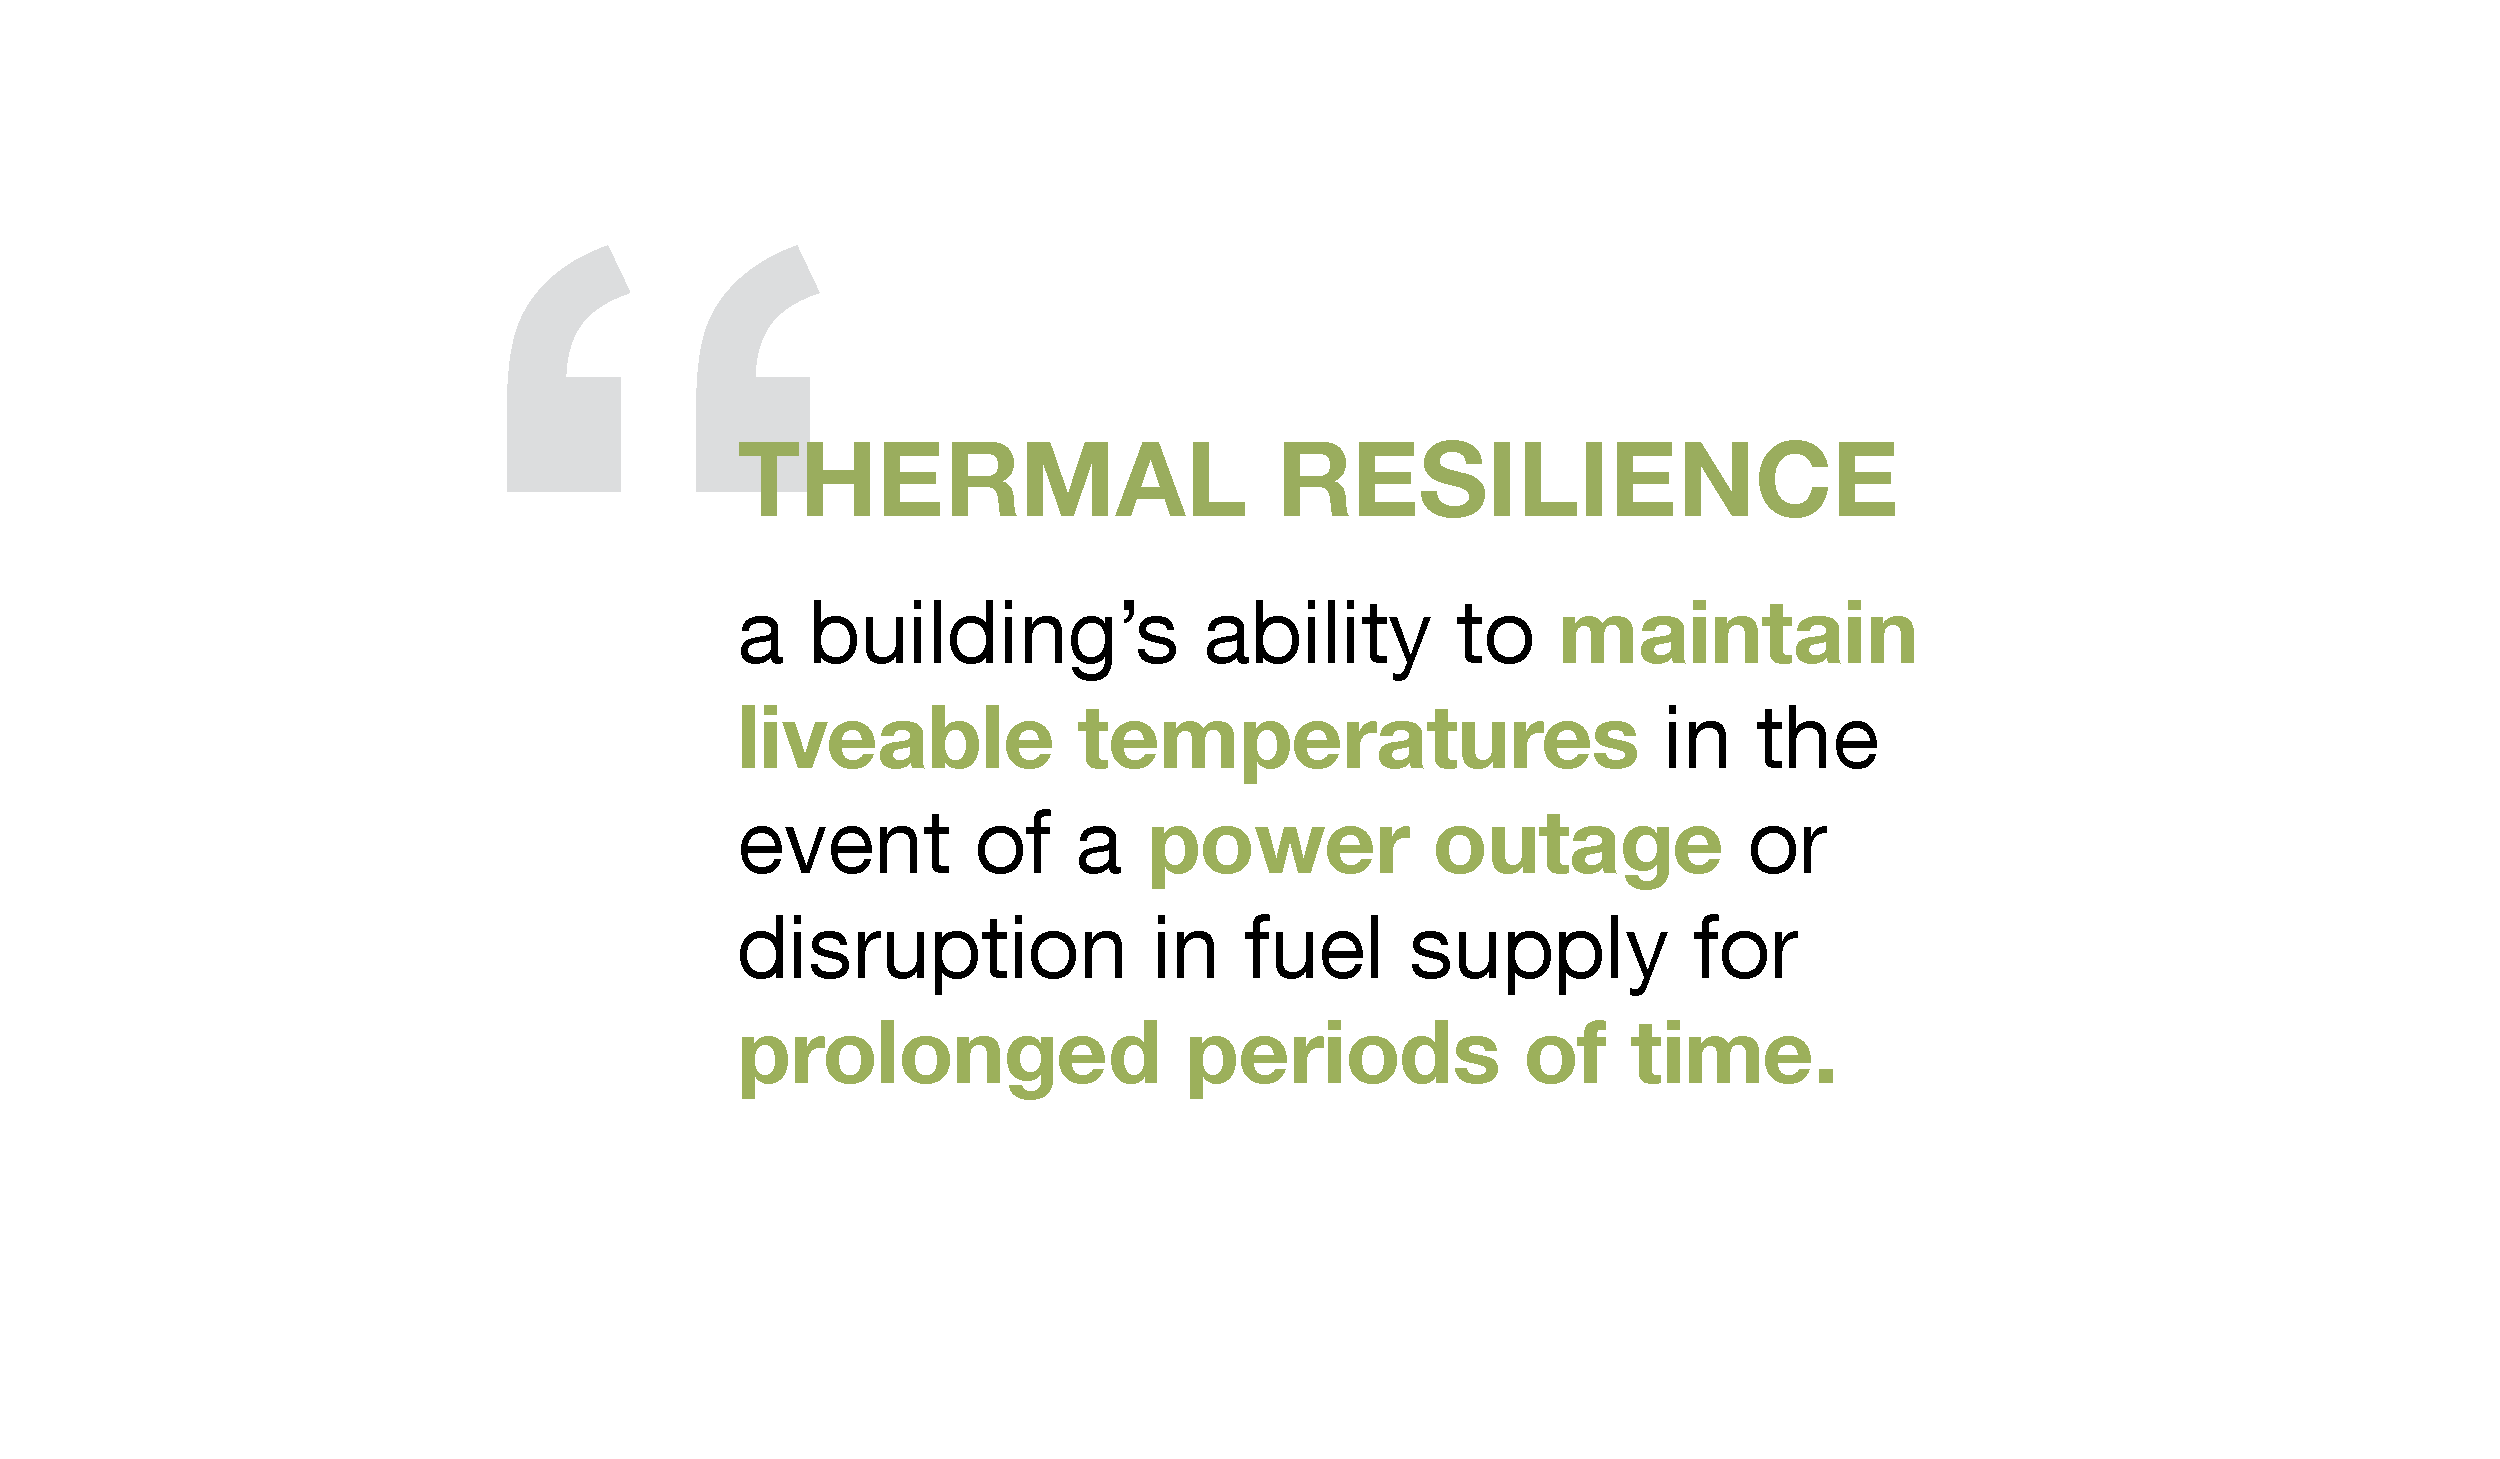 Thermal Resilience refers to a building's ability to maintain livable temperatures in the event of a power outage or disruption of fuel supply for prolonged periods of time.